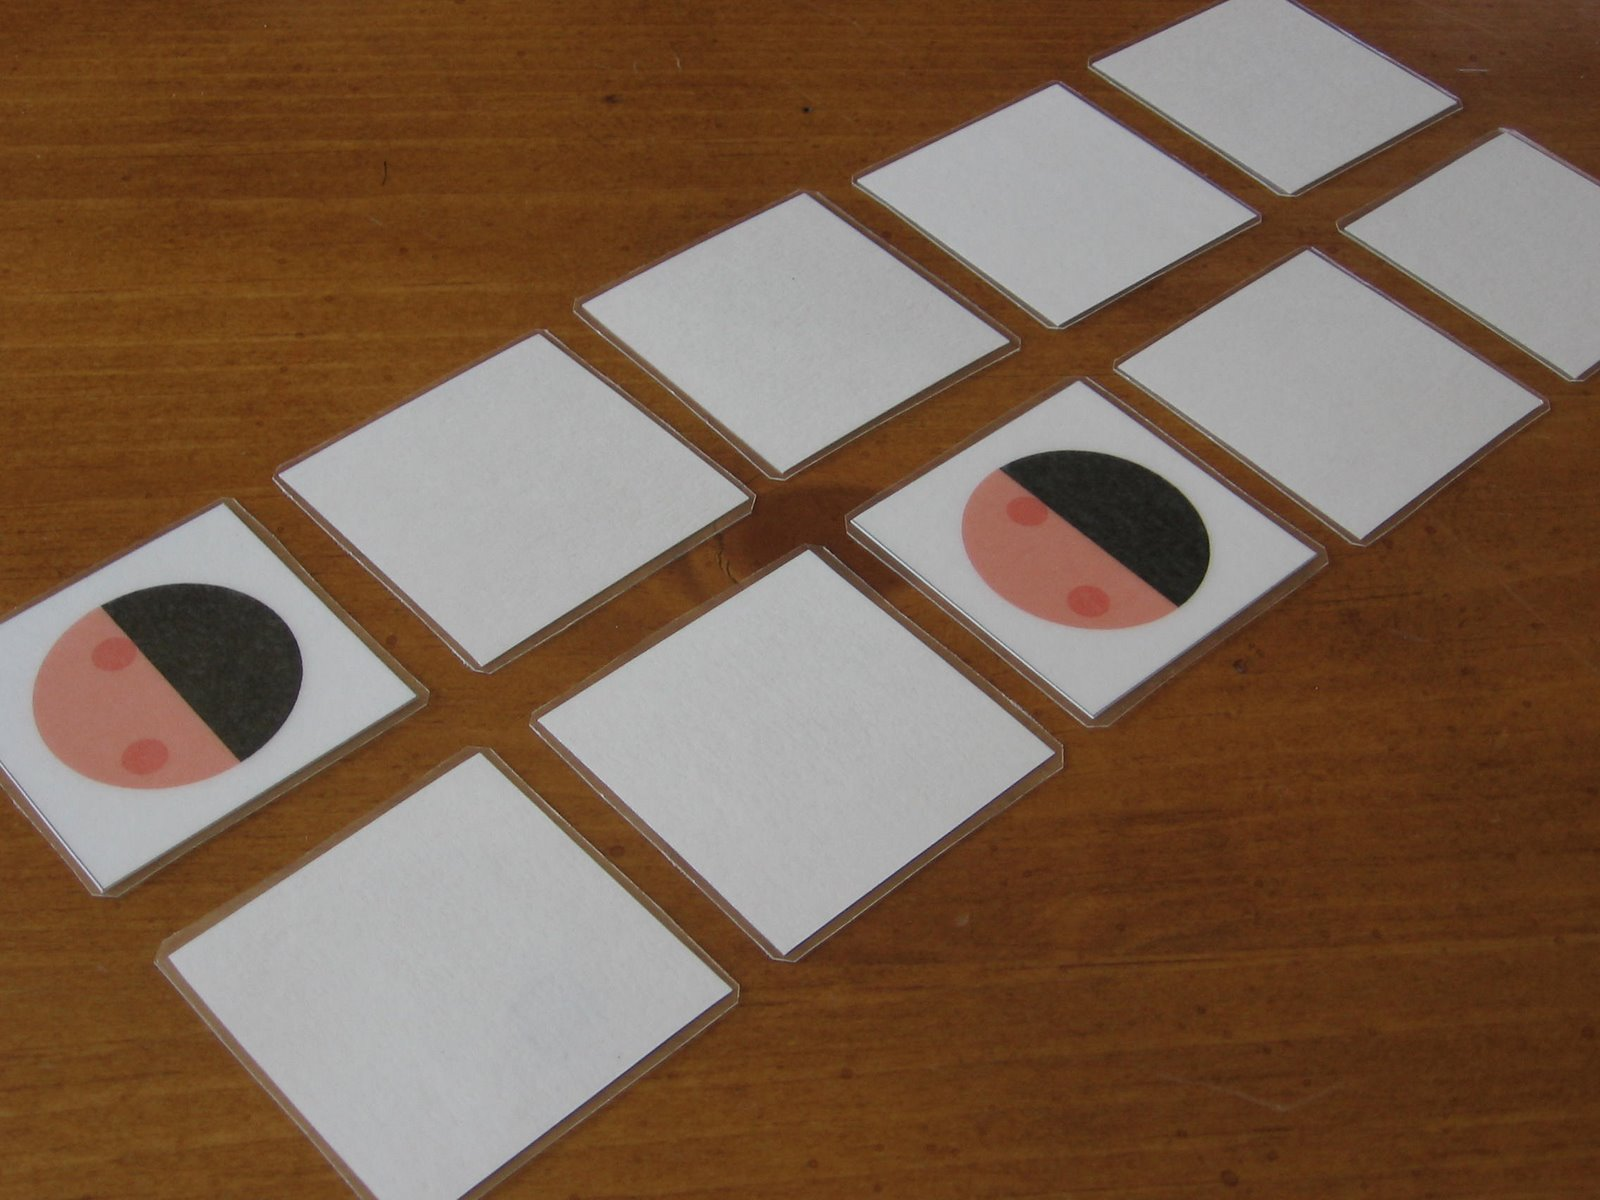 Moon phase memory game